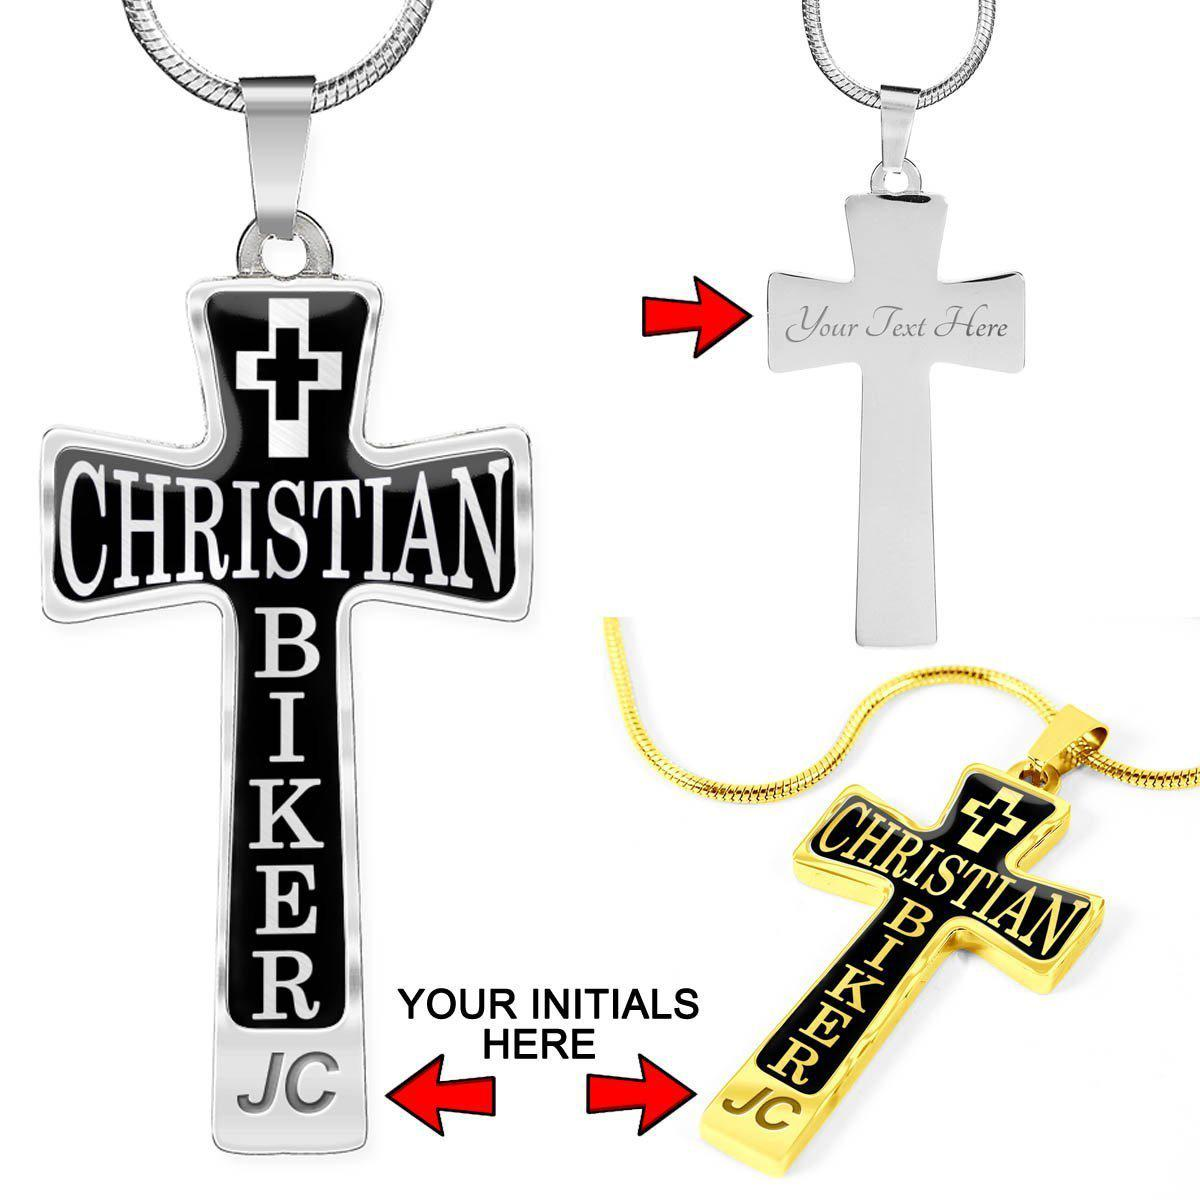 Christian Biker Cross - Custom Engrave